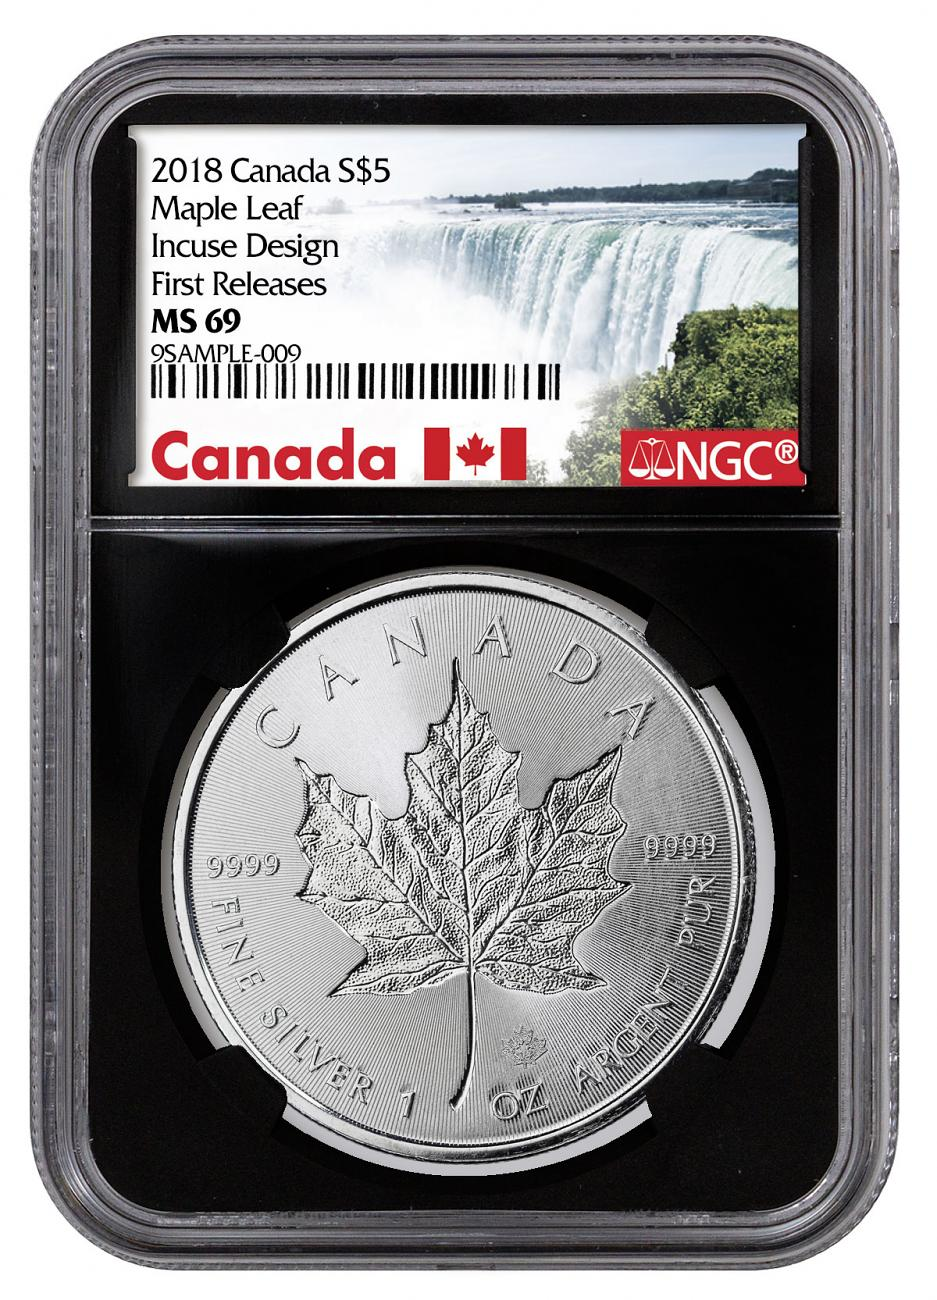 2018 Canada 1 oz Silver Maple Leaf - Incuse $5 Coin NGC MS69 FR Black Core Holder Exclusive Canada Label